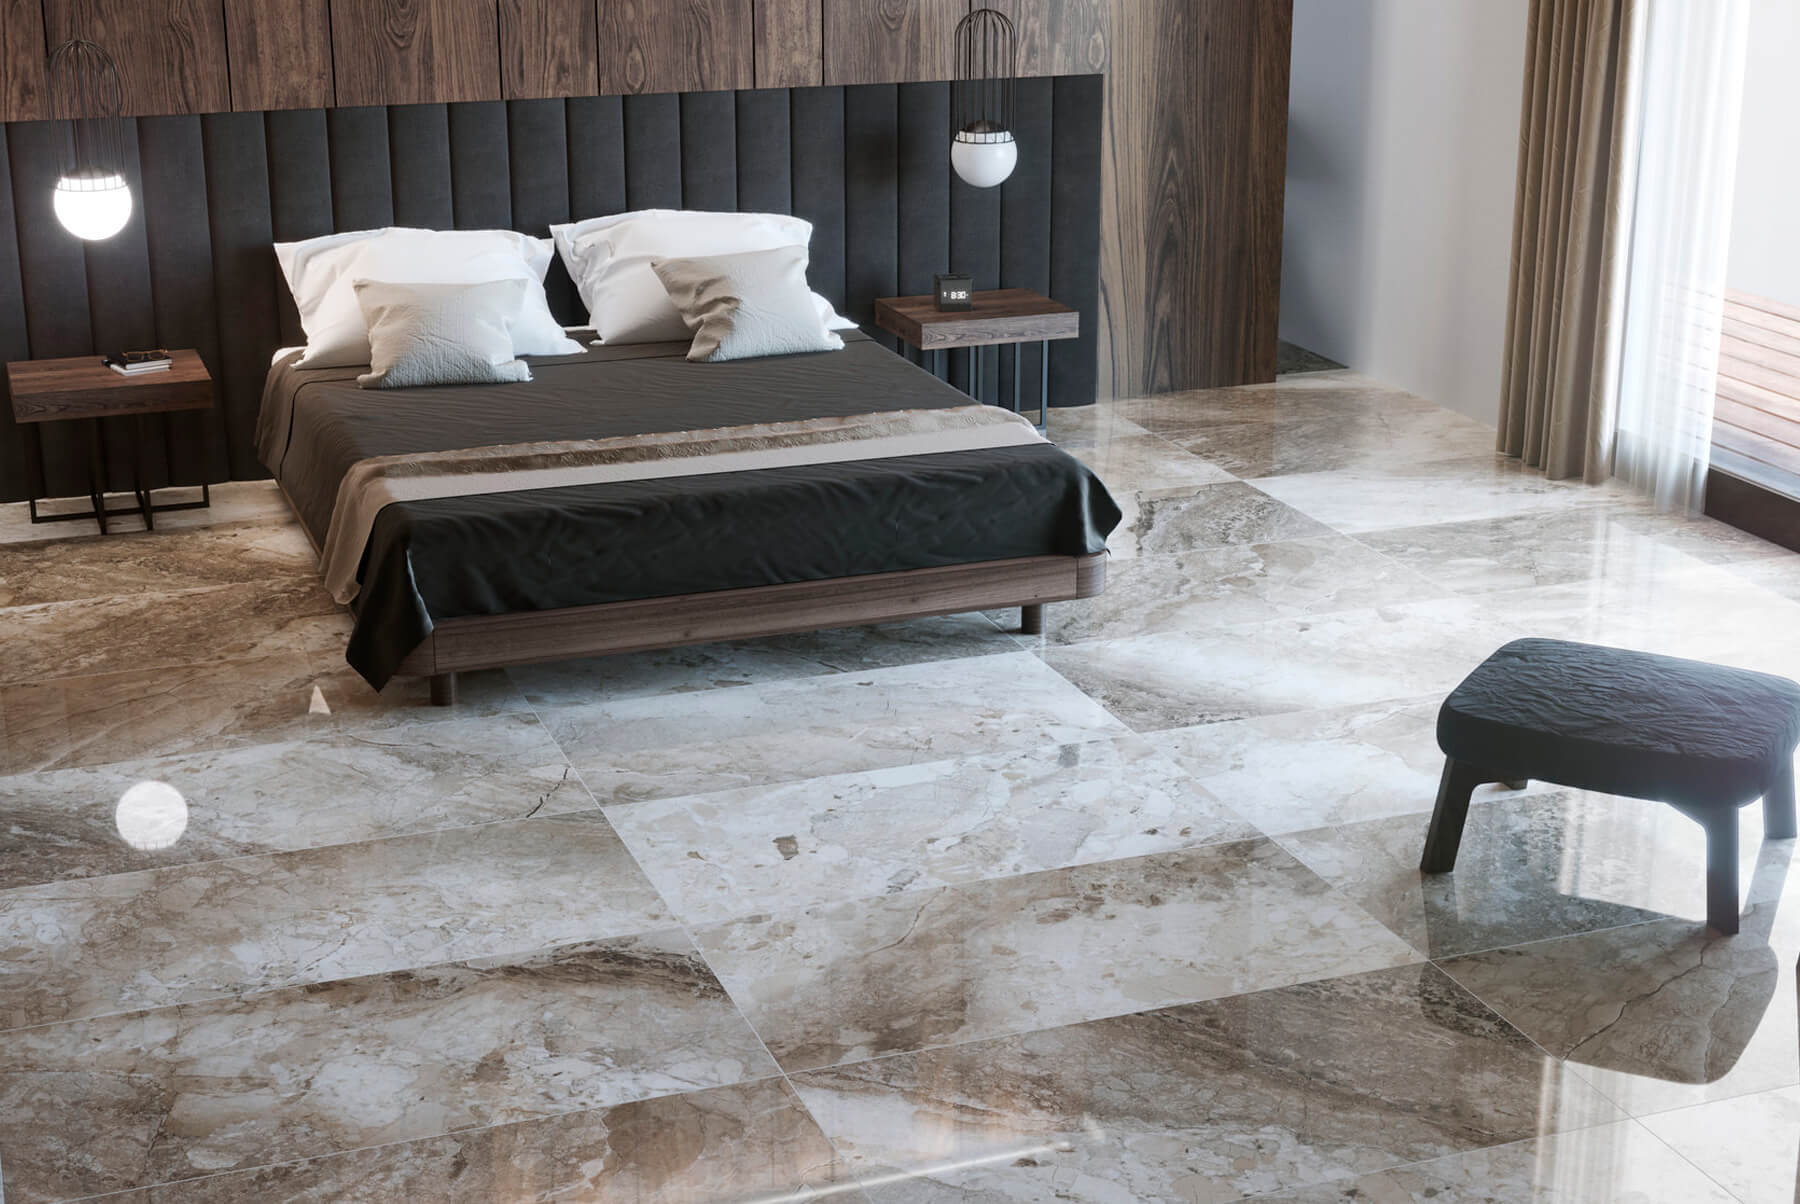 TILES-DREAMY-MARBLE-INSET-4-1800x1204